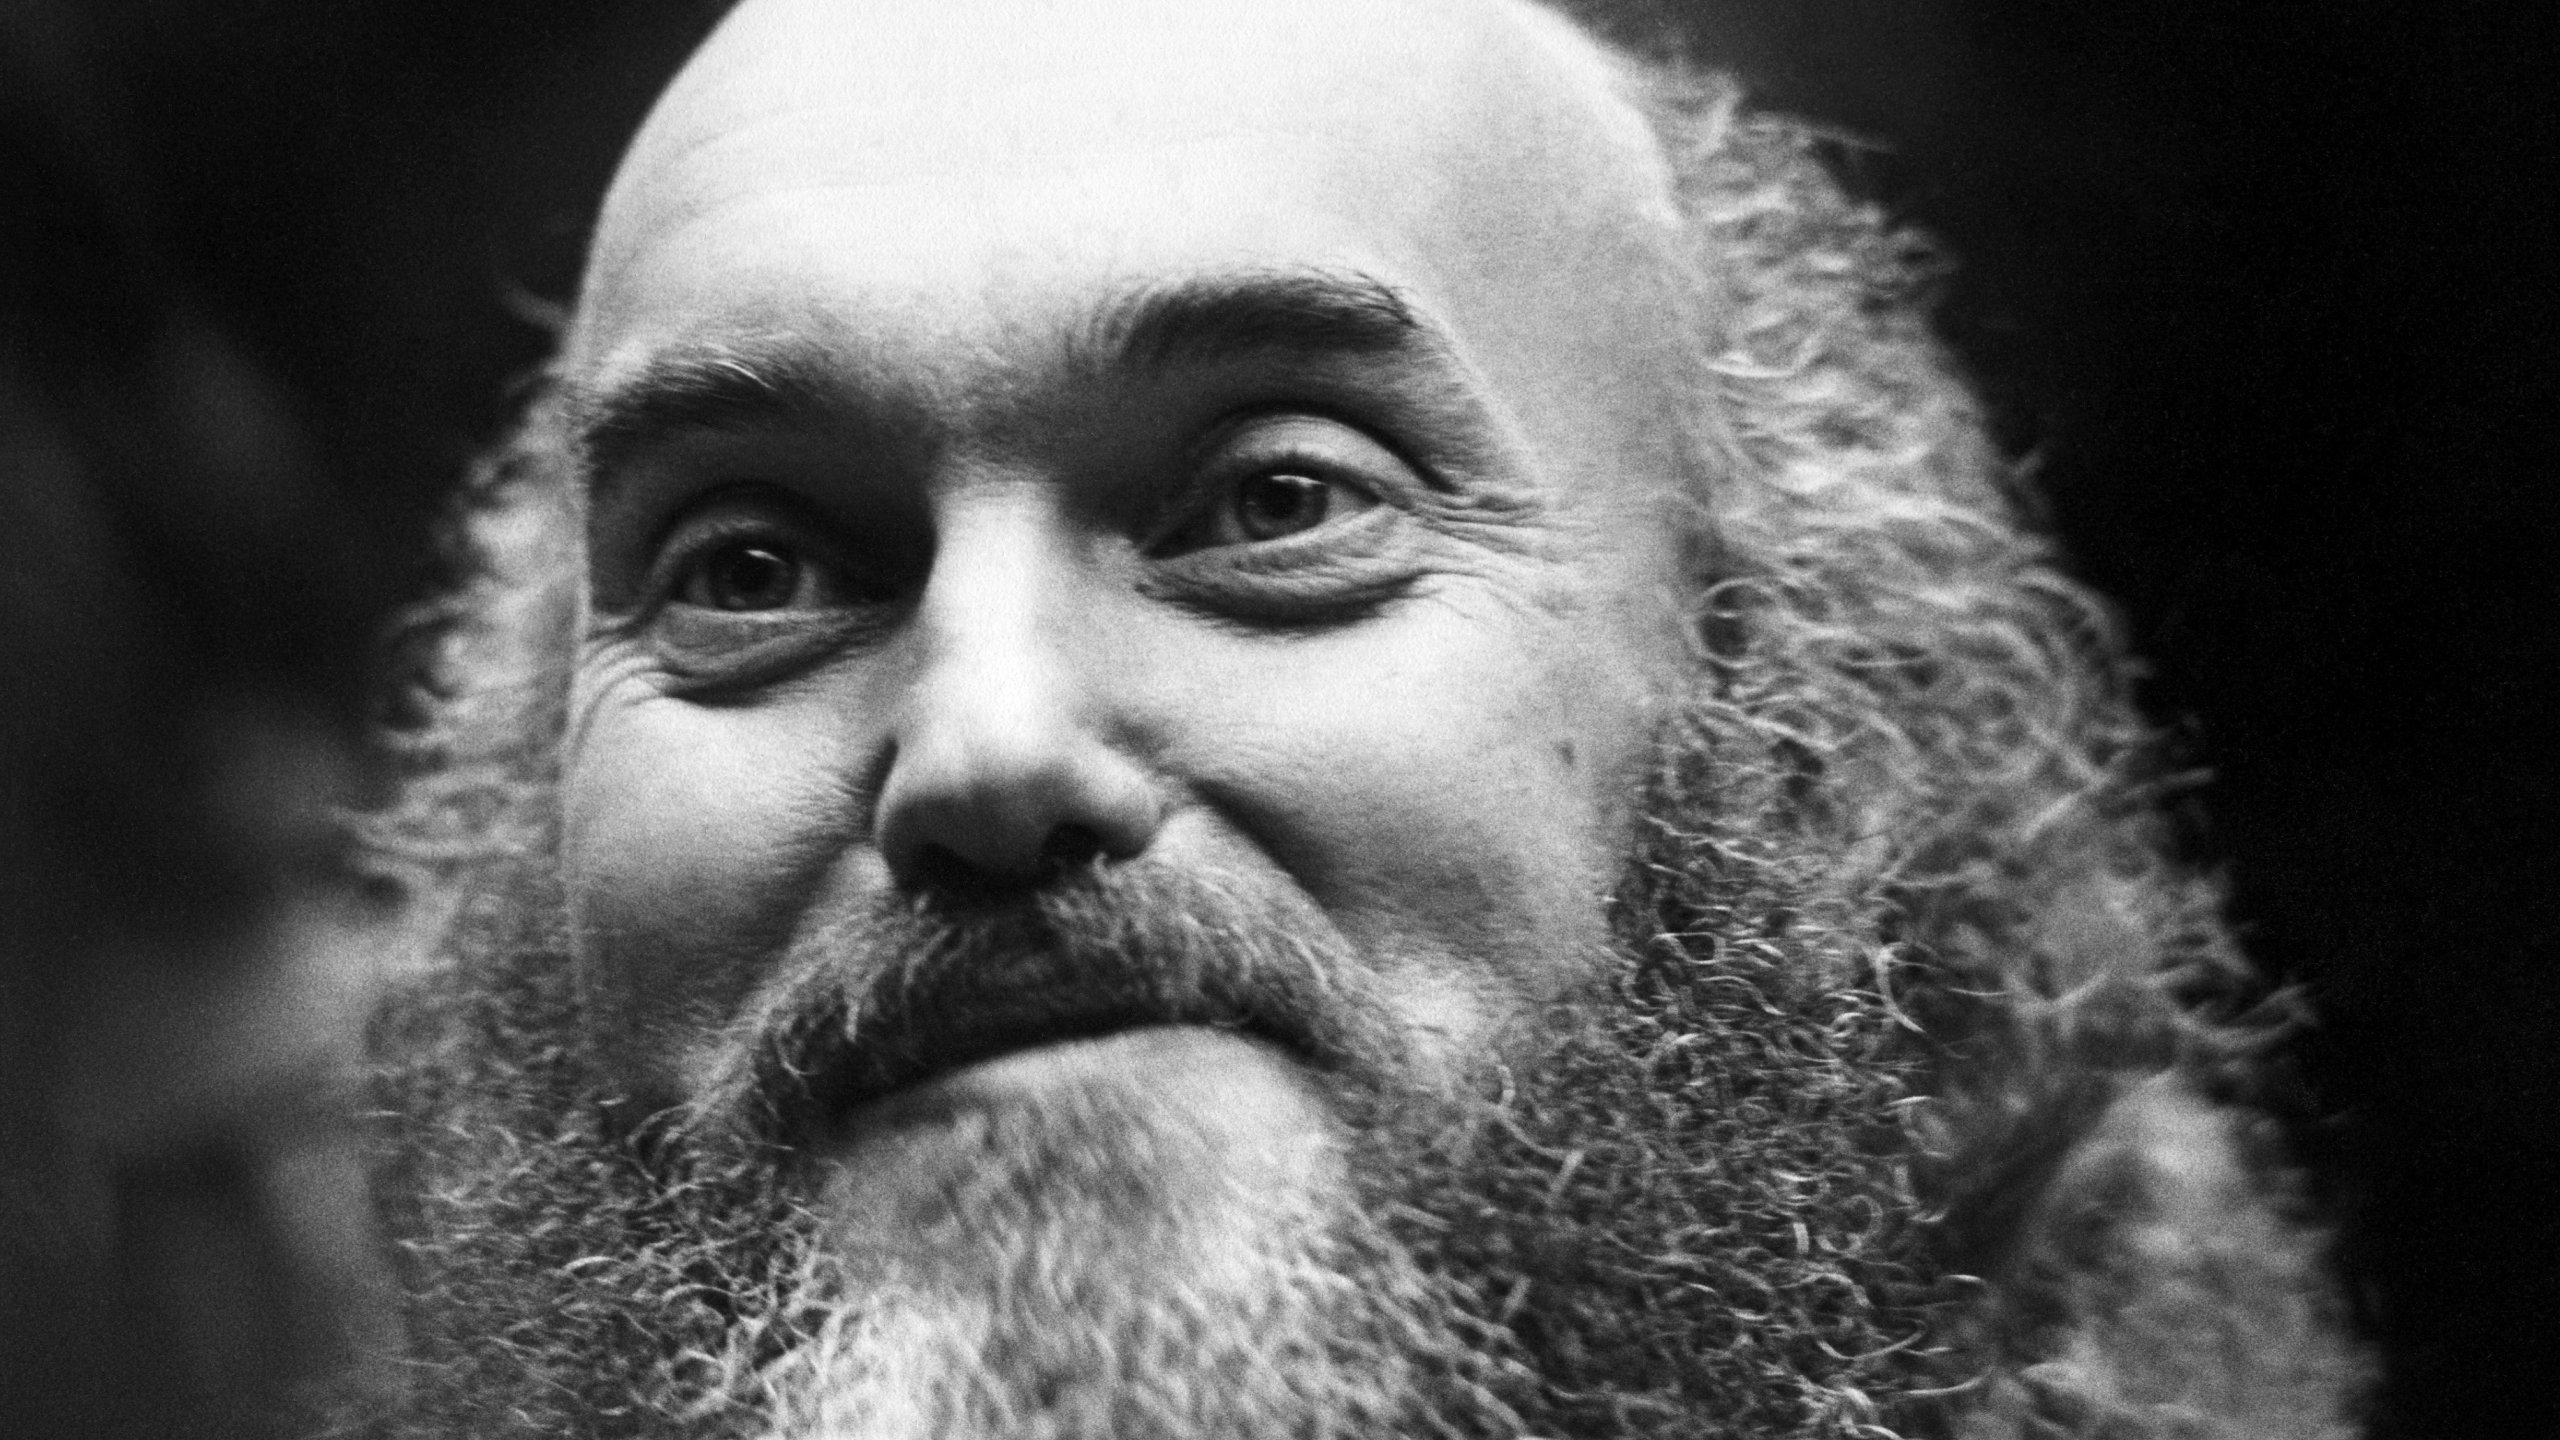 Baba Ram Dass, psychedelic research pioneer, best-selling author and New Age guru who extolled the virtues of mindfulness and grace, has died. He was 88. (Credit: Robert Altman/Michael Ochs Archives/Getty Images via CNN Wire)